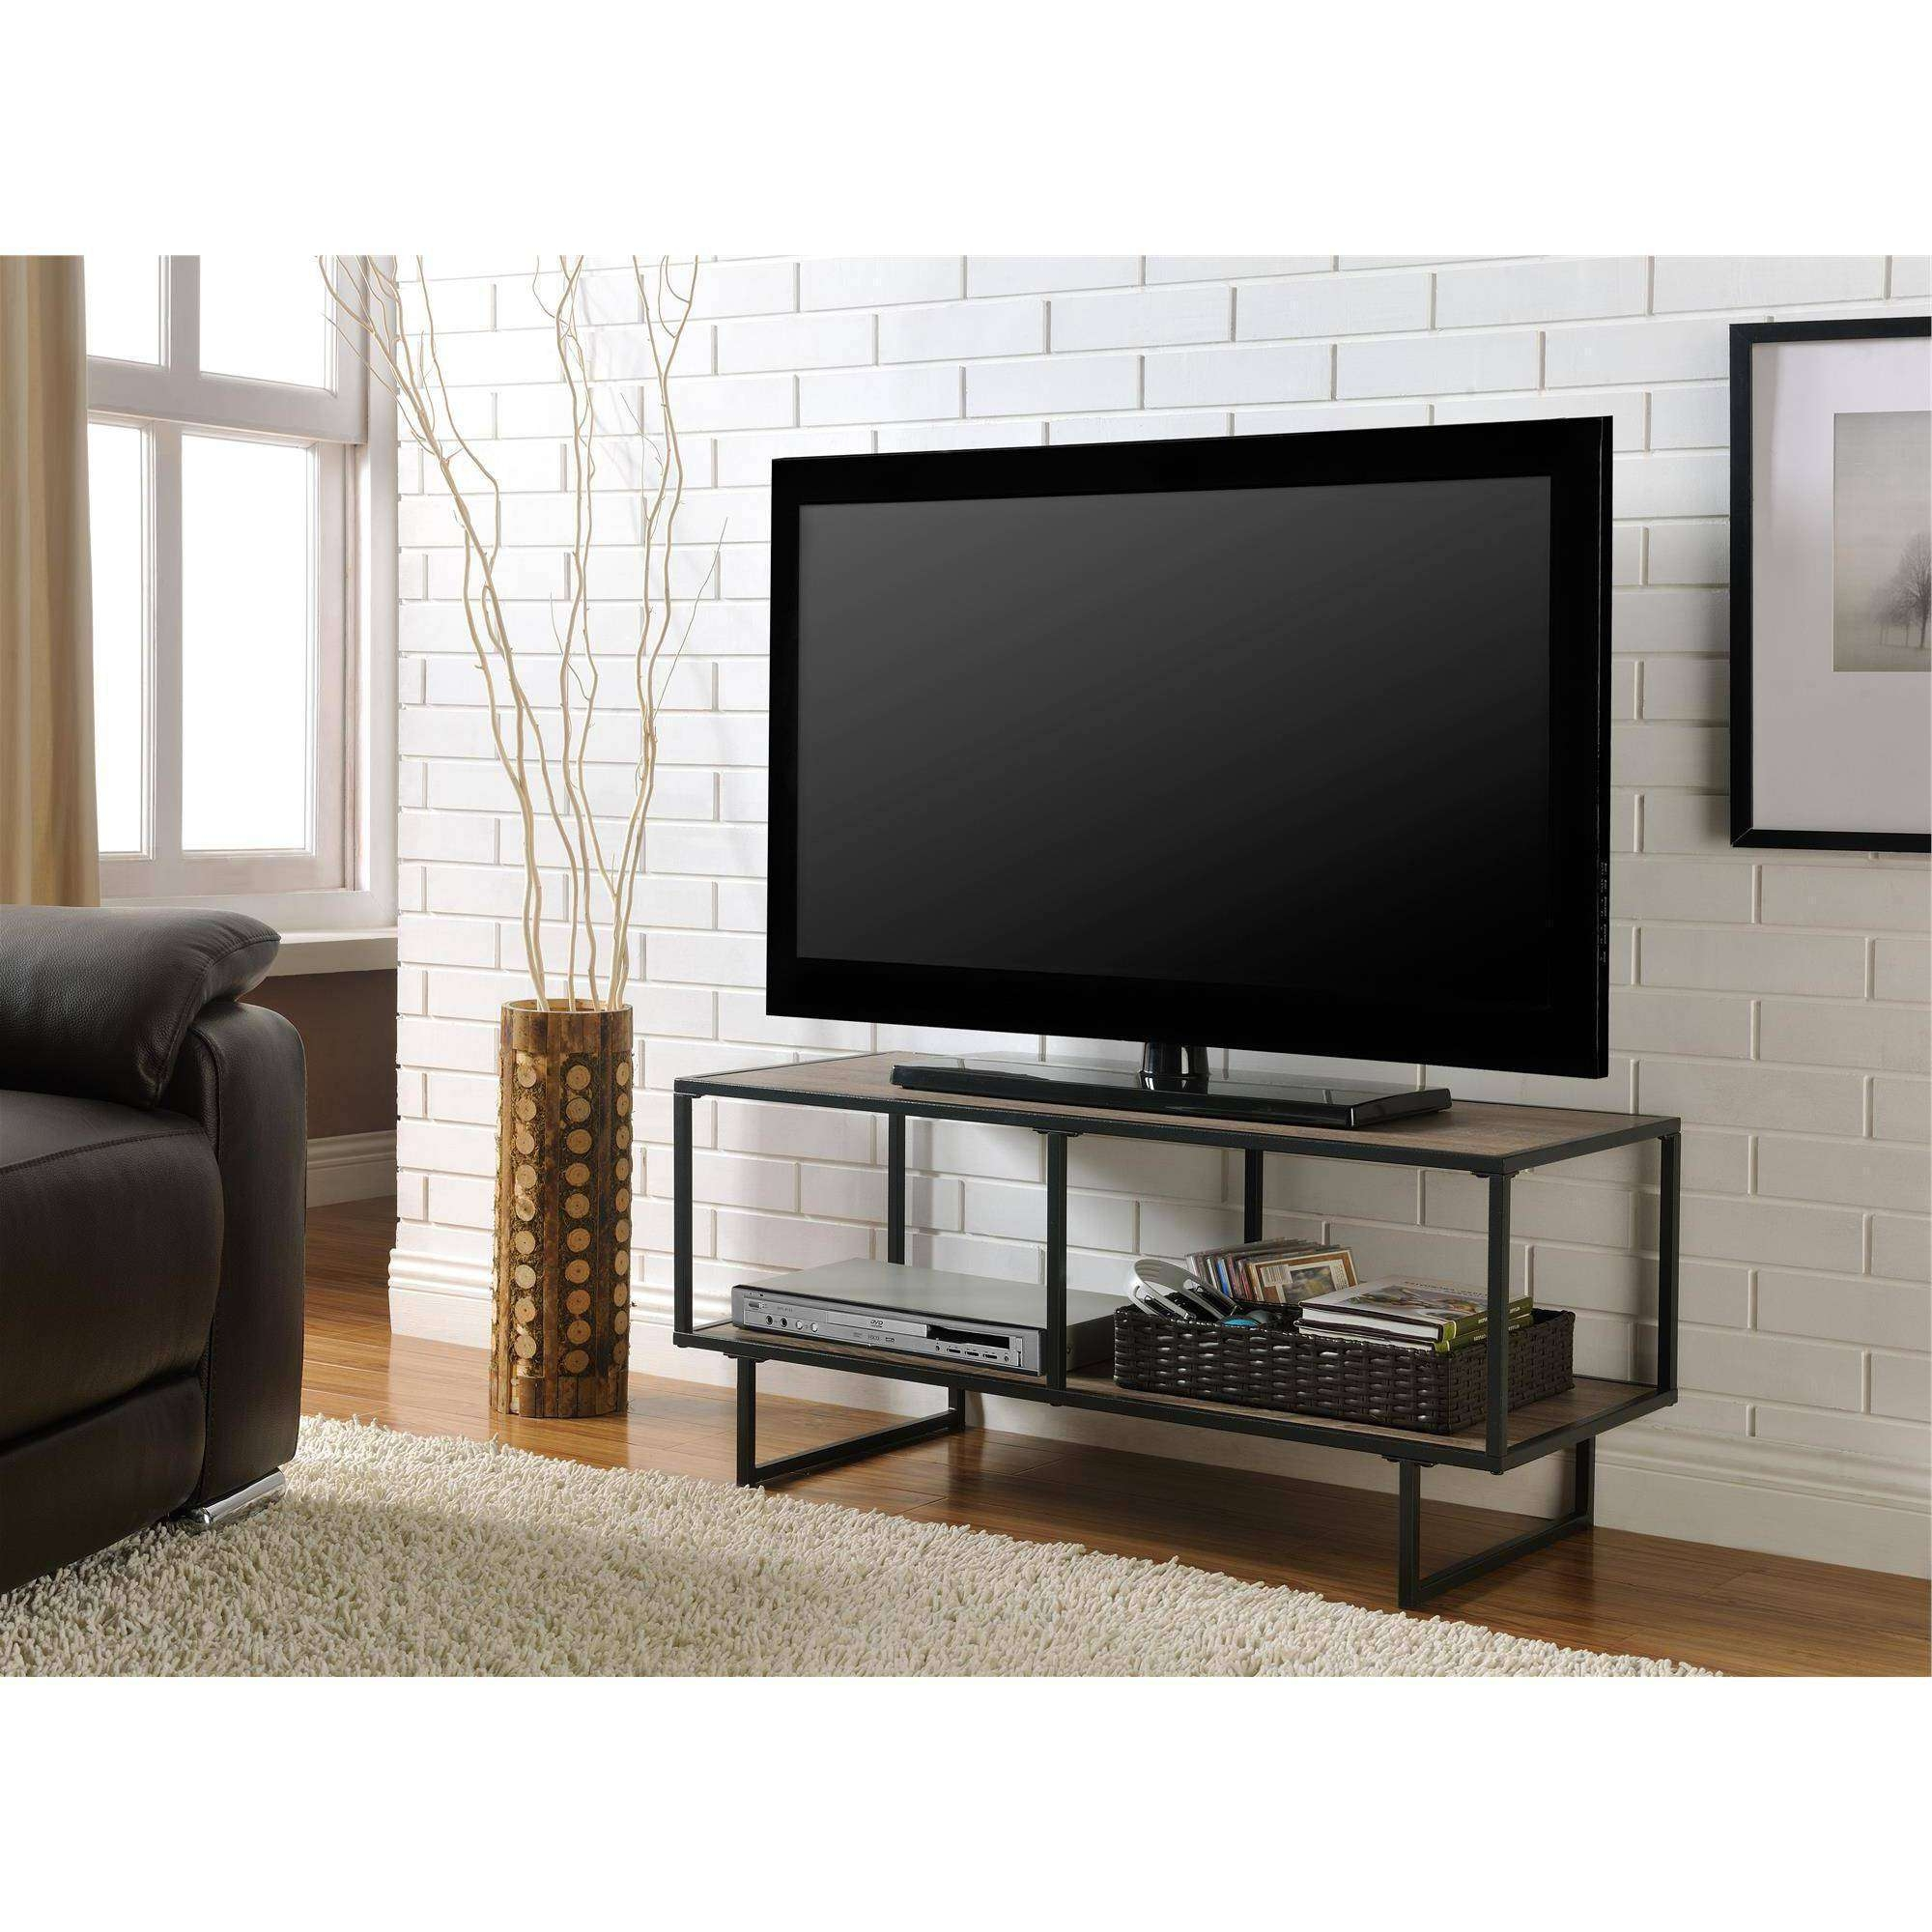 Altra Furniture Emmett 1 Shelf Tv Stand Coffee Table In Sonoma Oak Intended For Industrial Tv Cabinets (View 13 of 20)